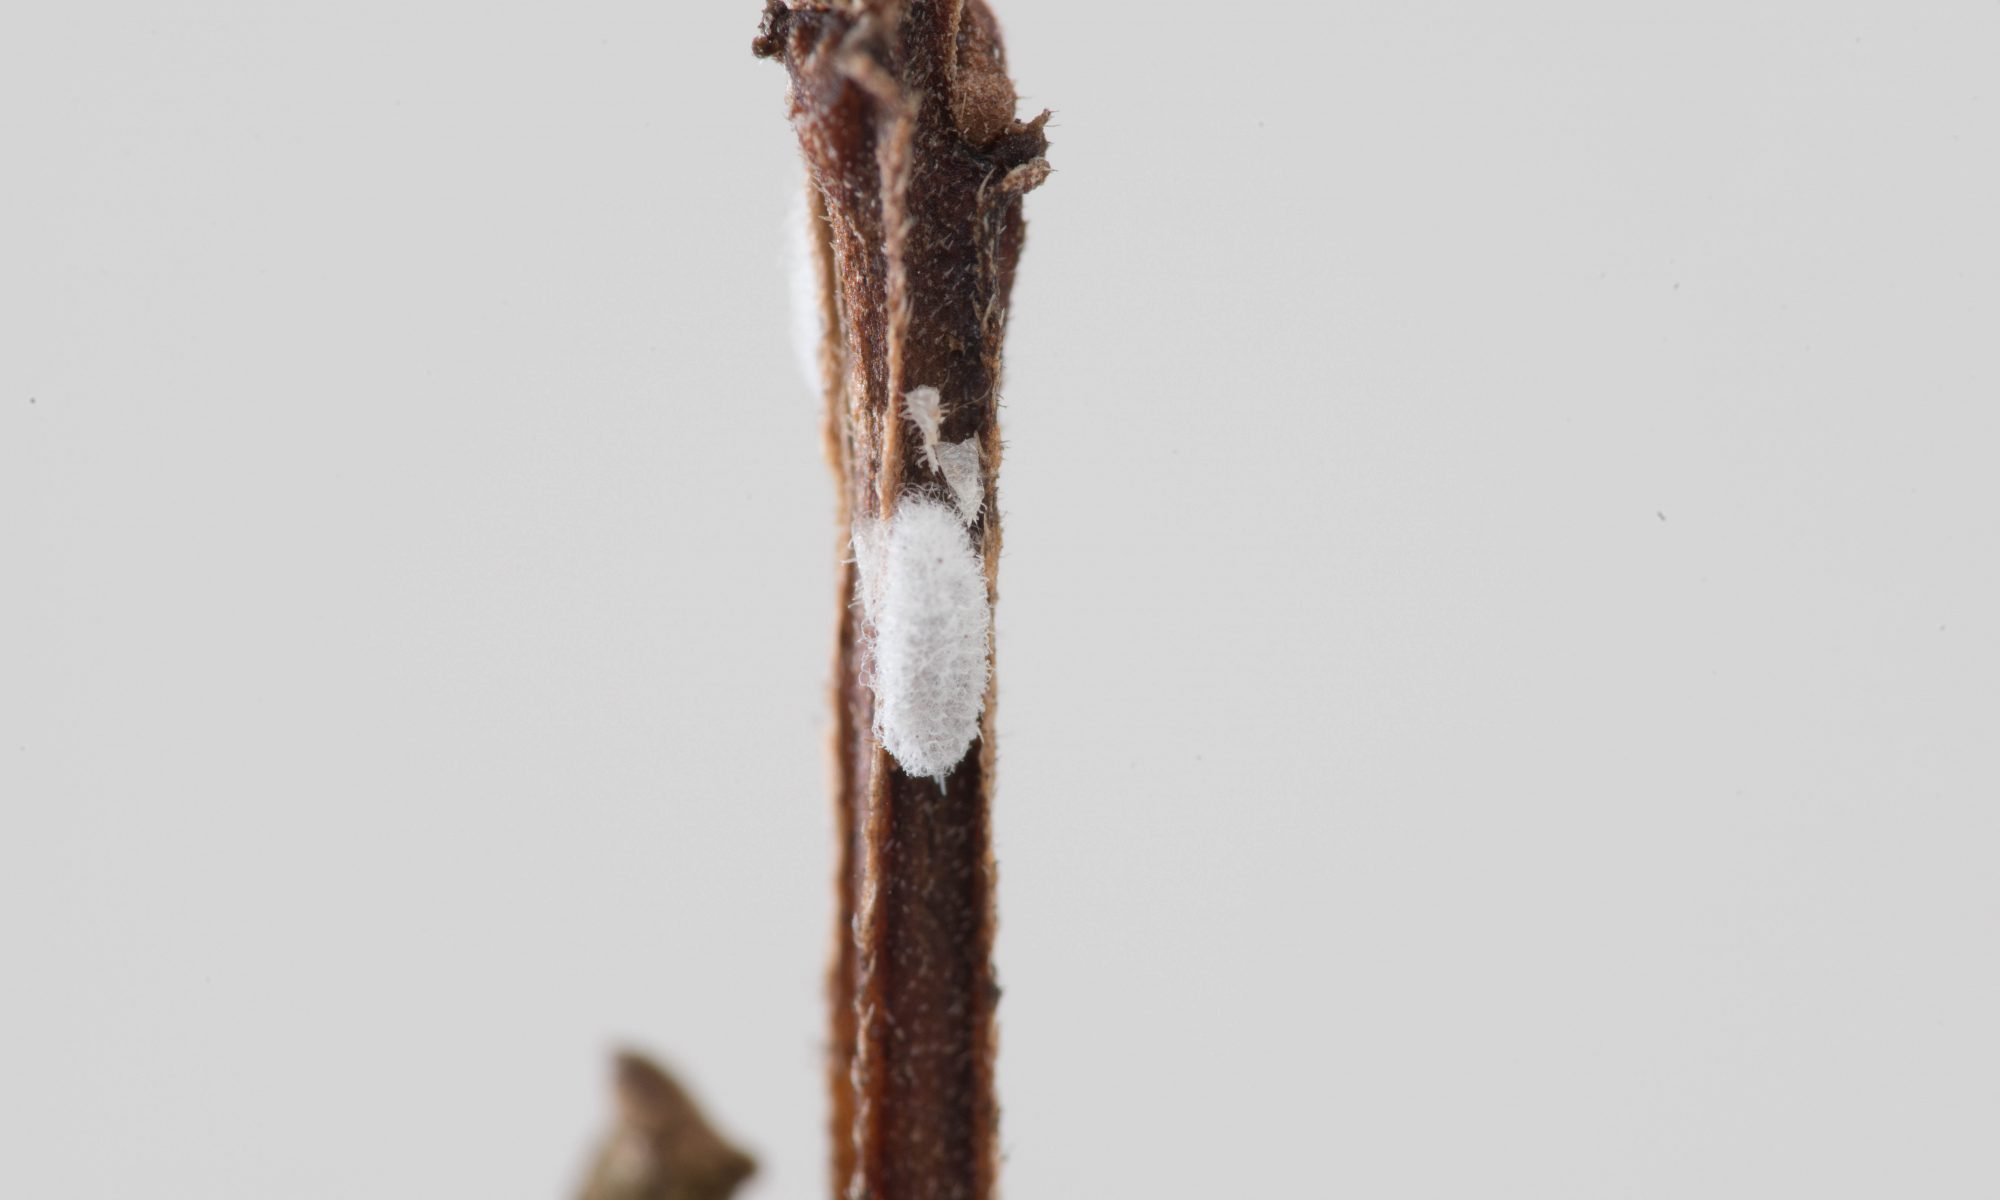 Crapemyrtle Bark Scale